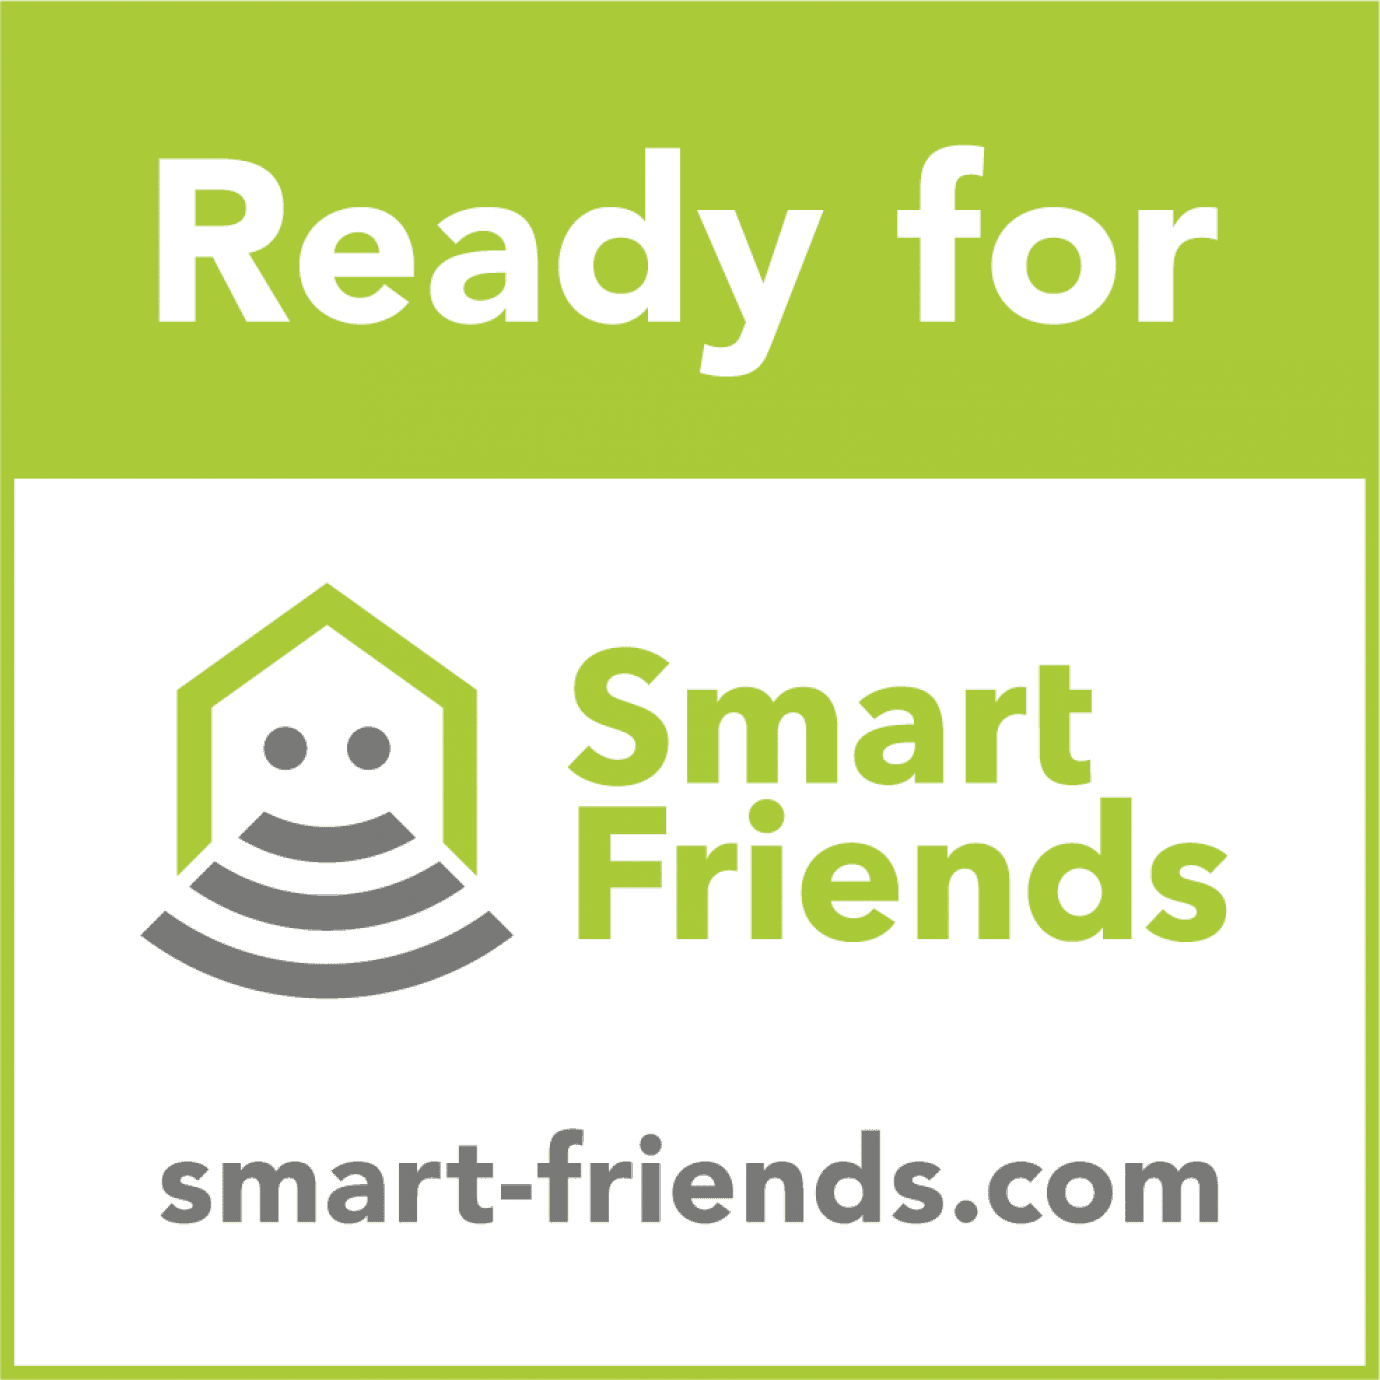 smart-home-smart friends-logo ready for.png